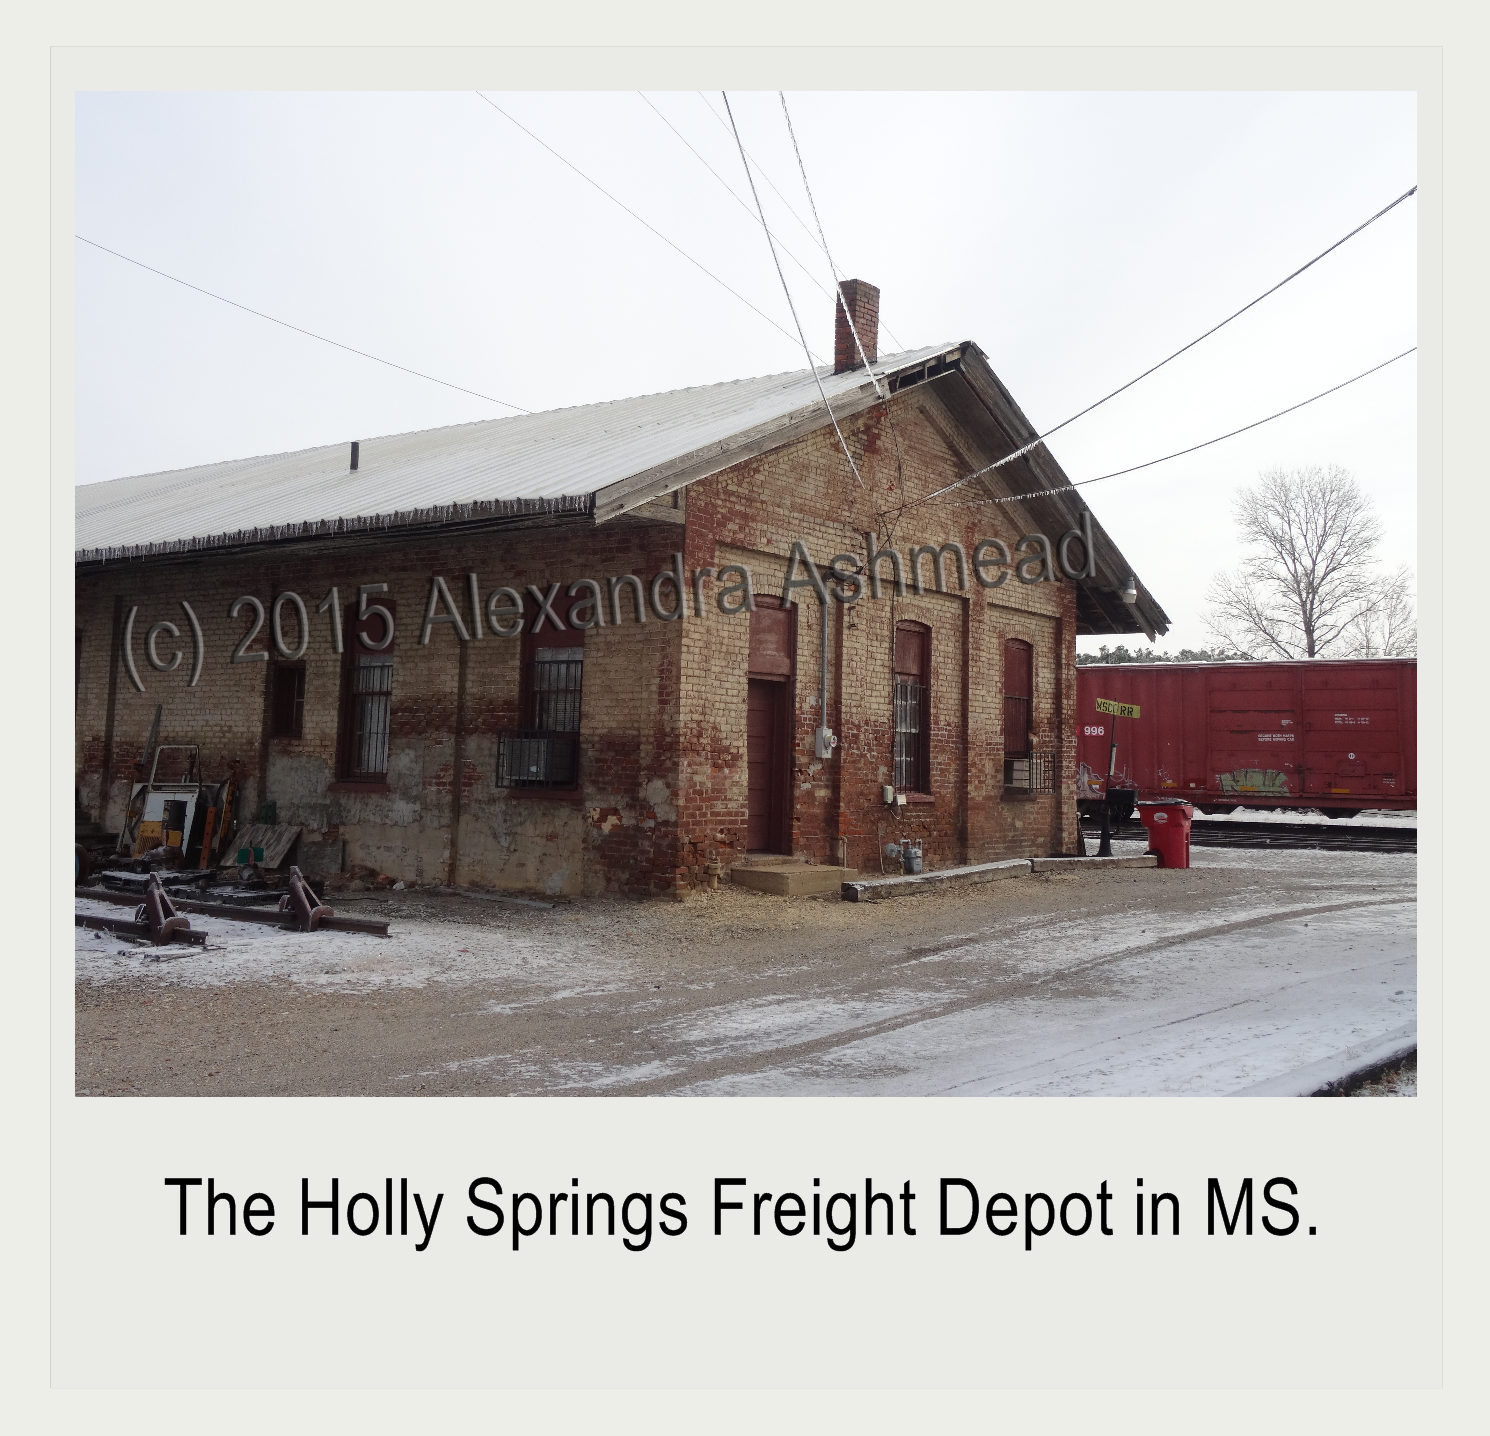 Holly Springs Freight Depot After a Snow Storm (c) 2015 Alexandra Ashmead